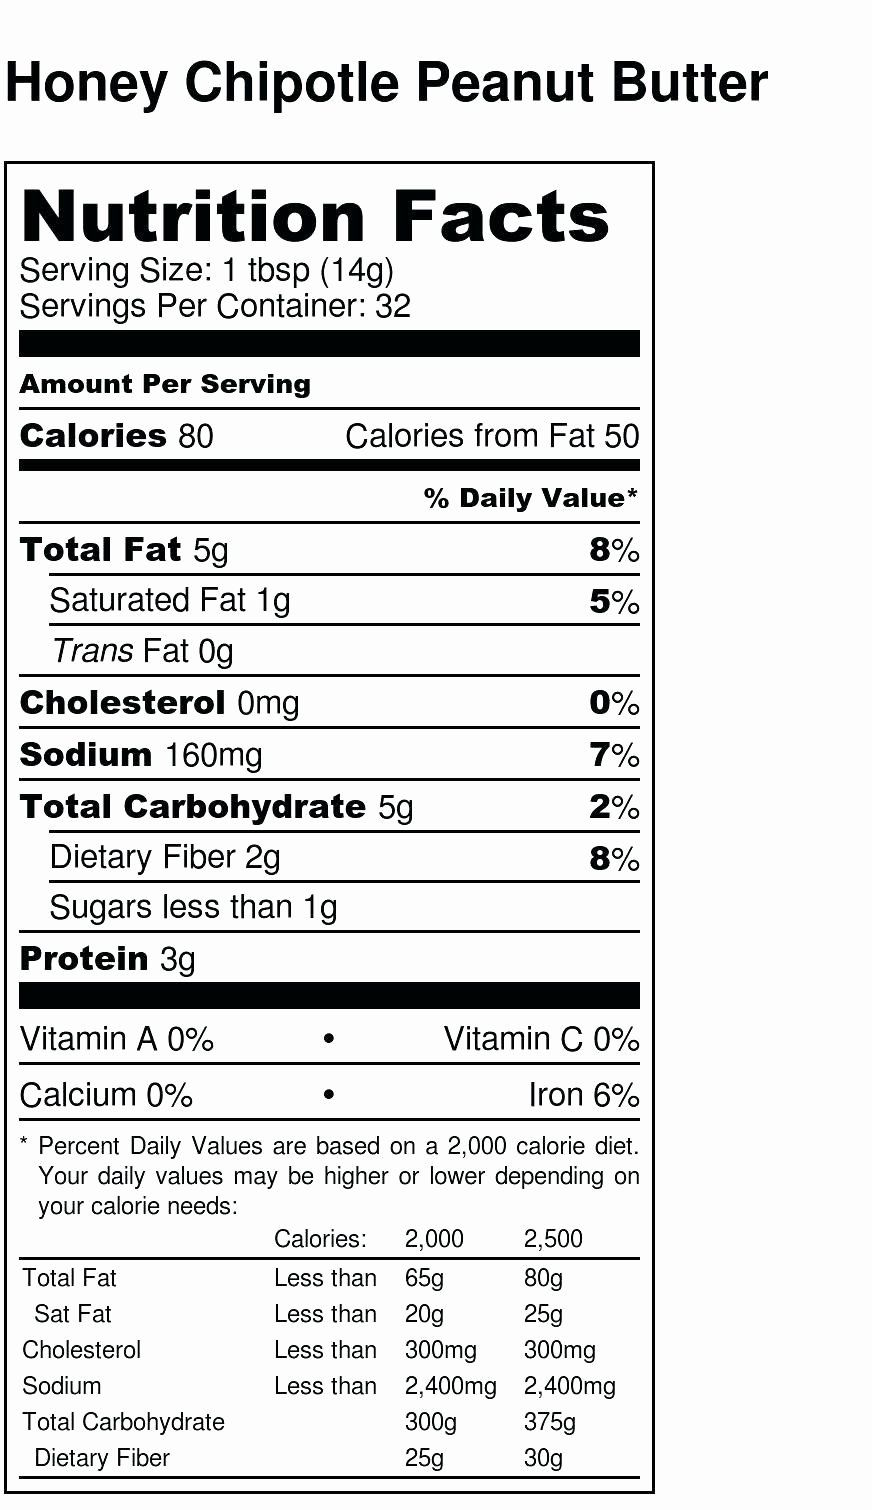 Editable Blank Nutrition Label Template : editable, blank, nutrition, label, template, Blank, Nutrition, Label, Template, Awesome, Facts, Ftempo, Label,, Template,, Templates